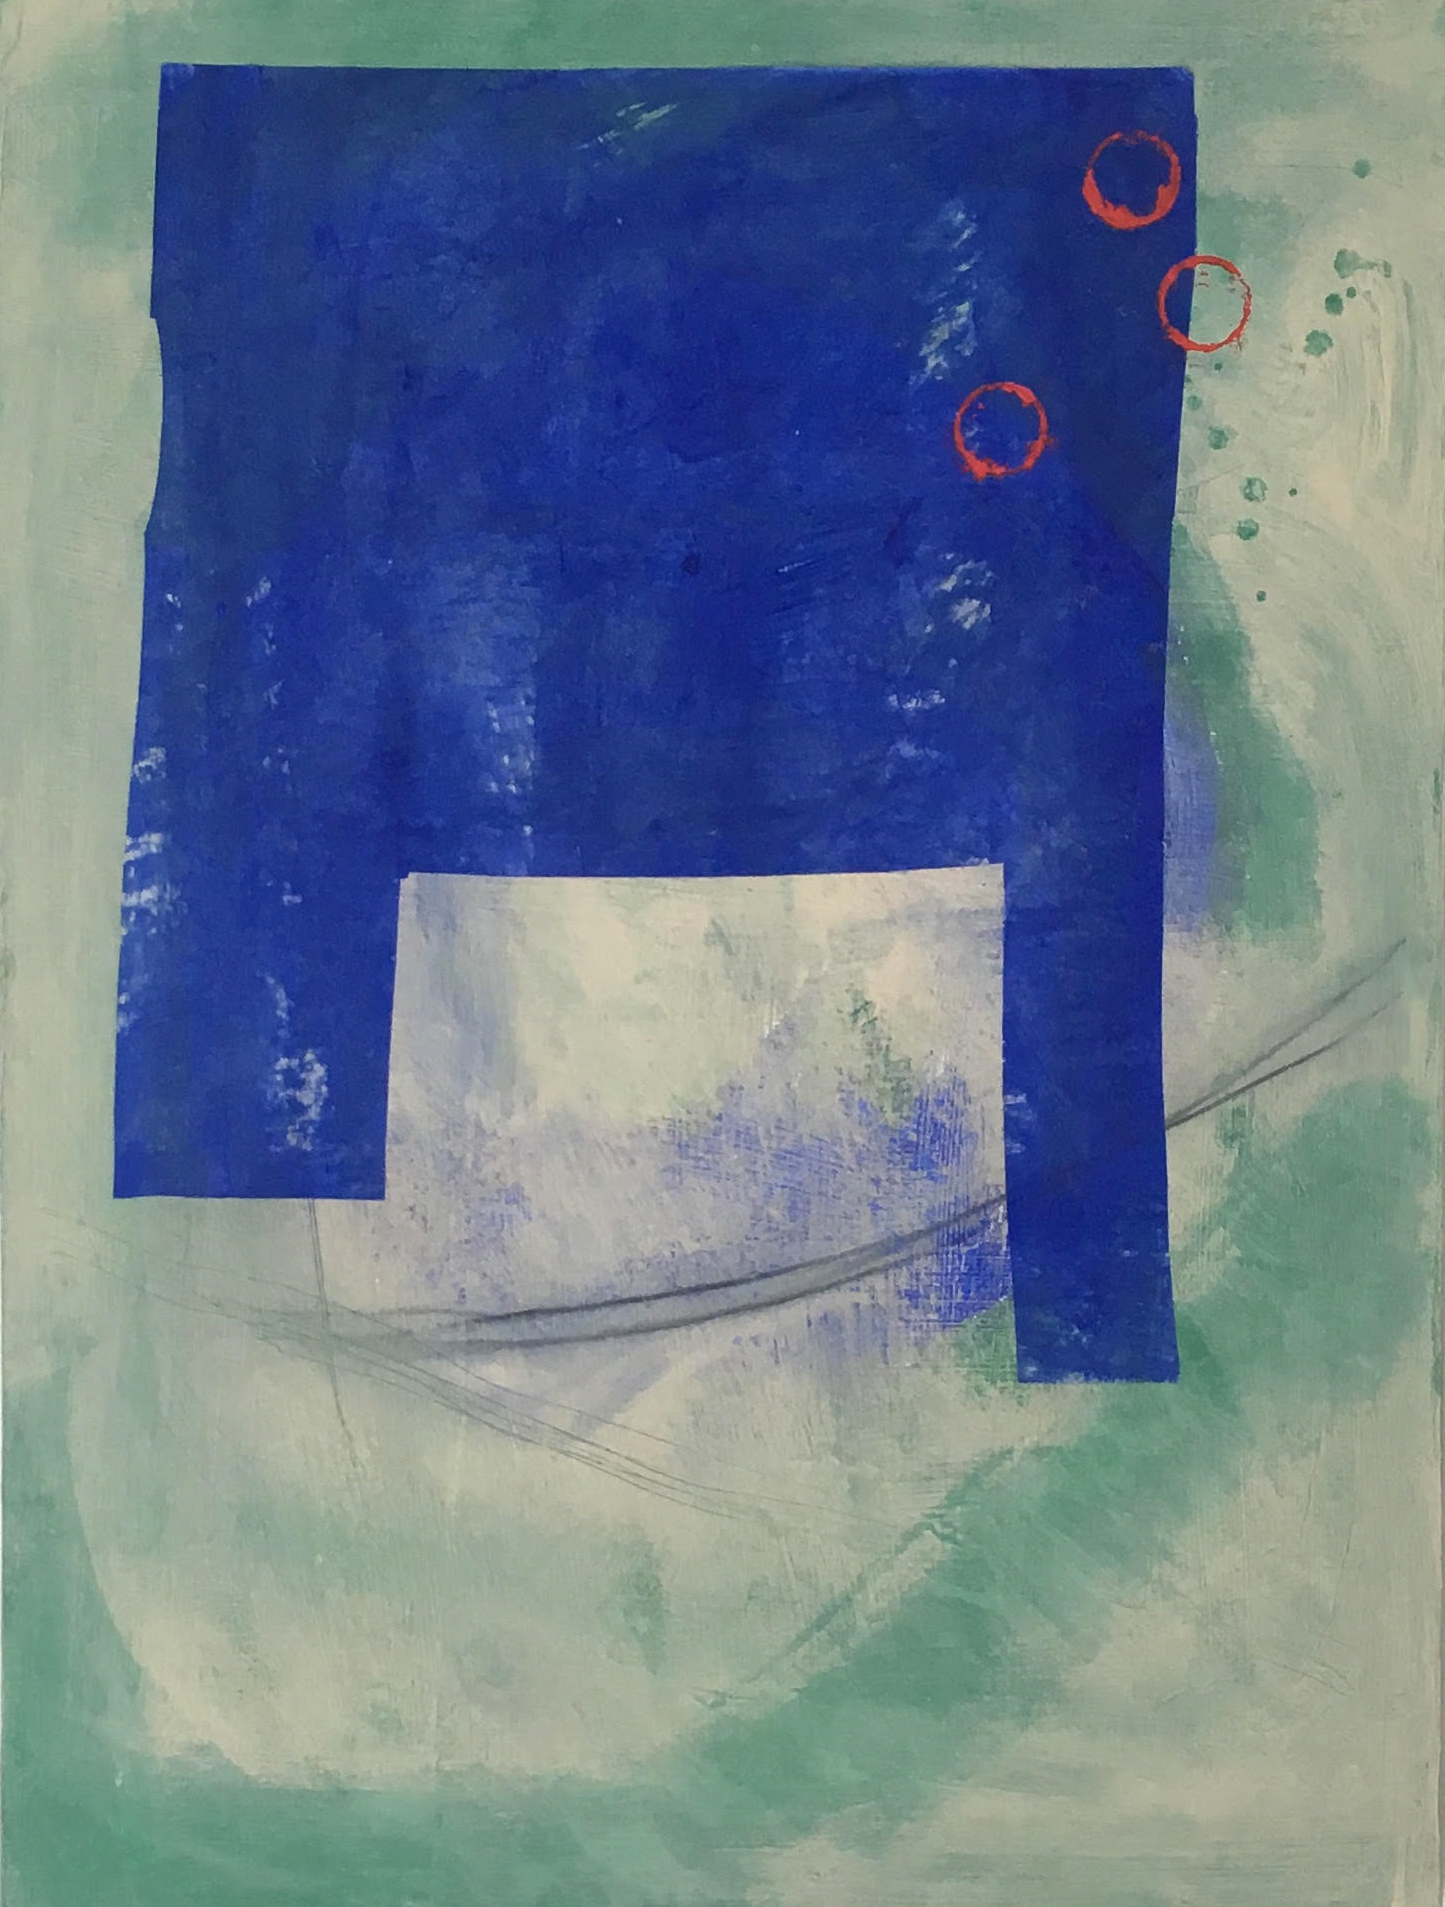 Blue Form on Varied Ground III, 2018, mulberry paper, acrylic on canvas, 24 x 18 in, $1,100